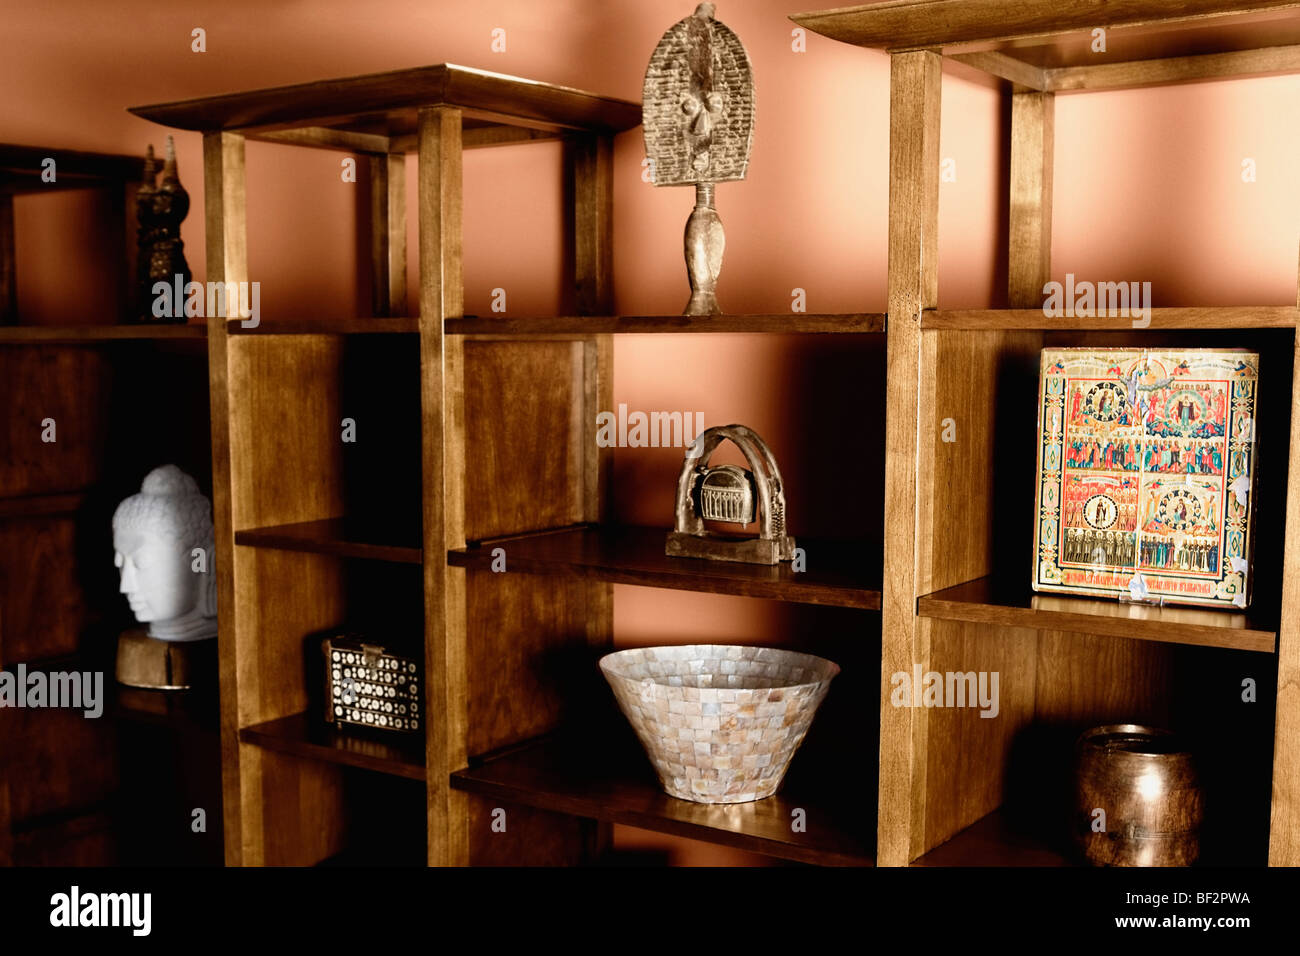 Artifacts on a shelf - Stock Image